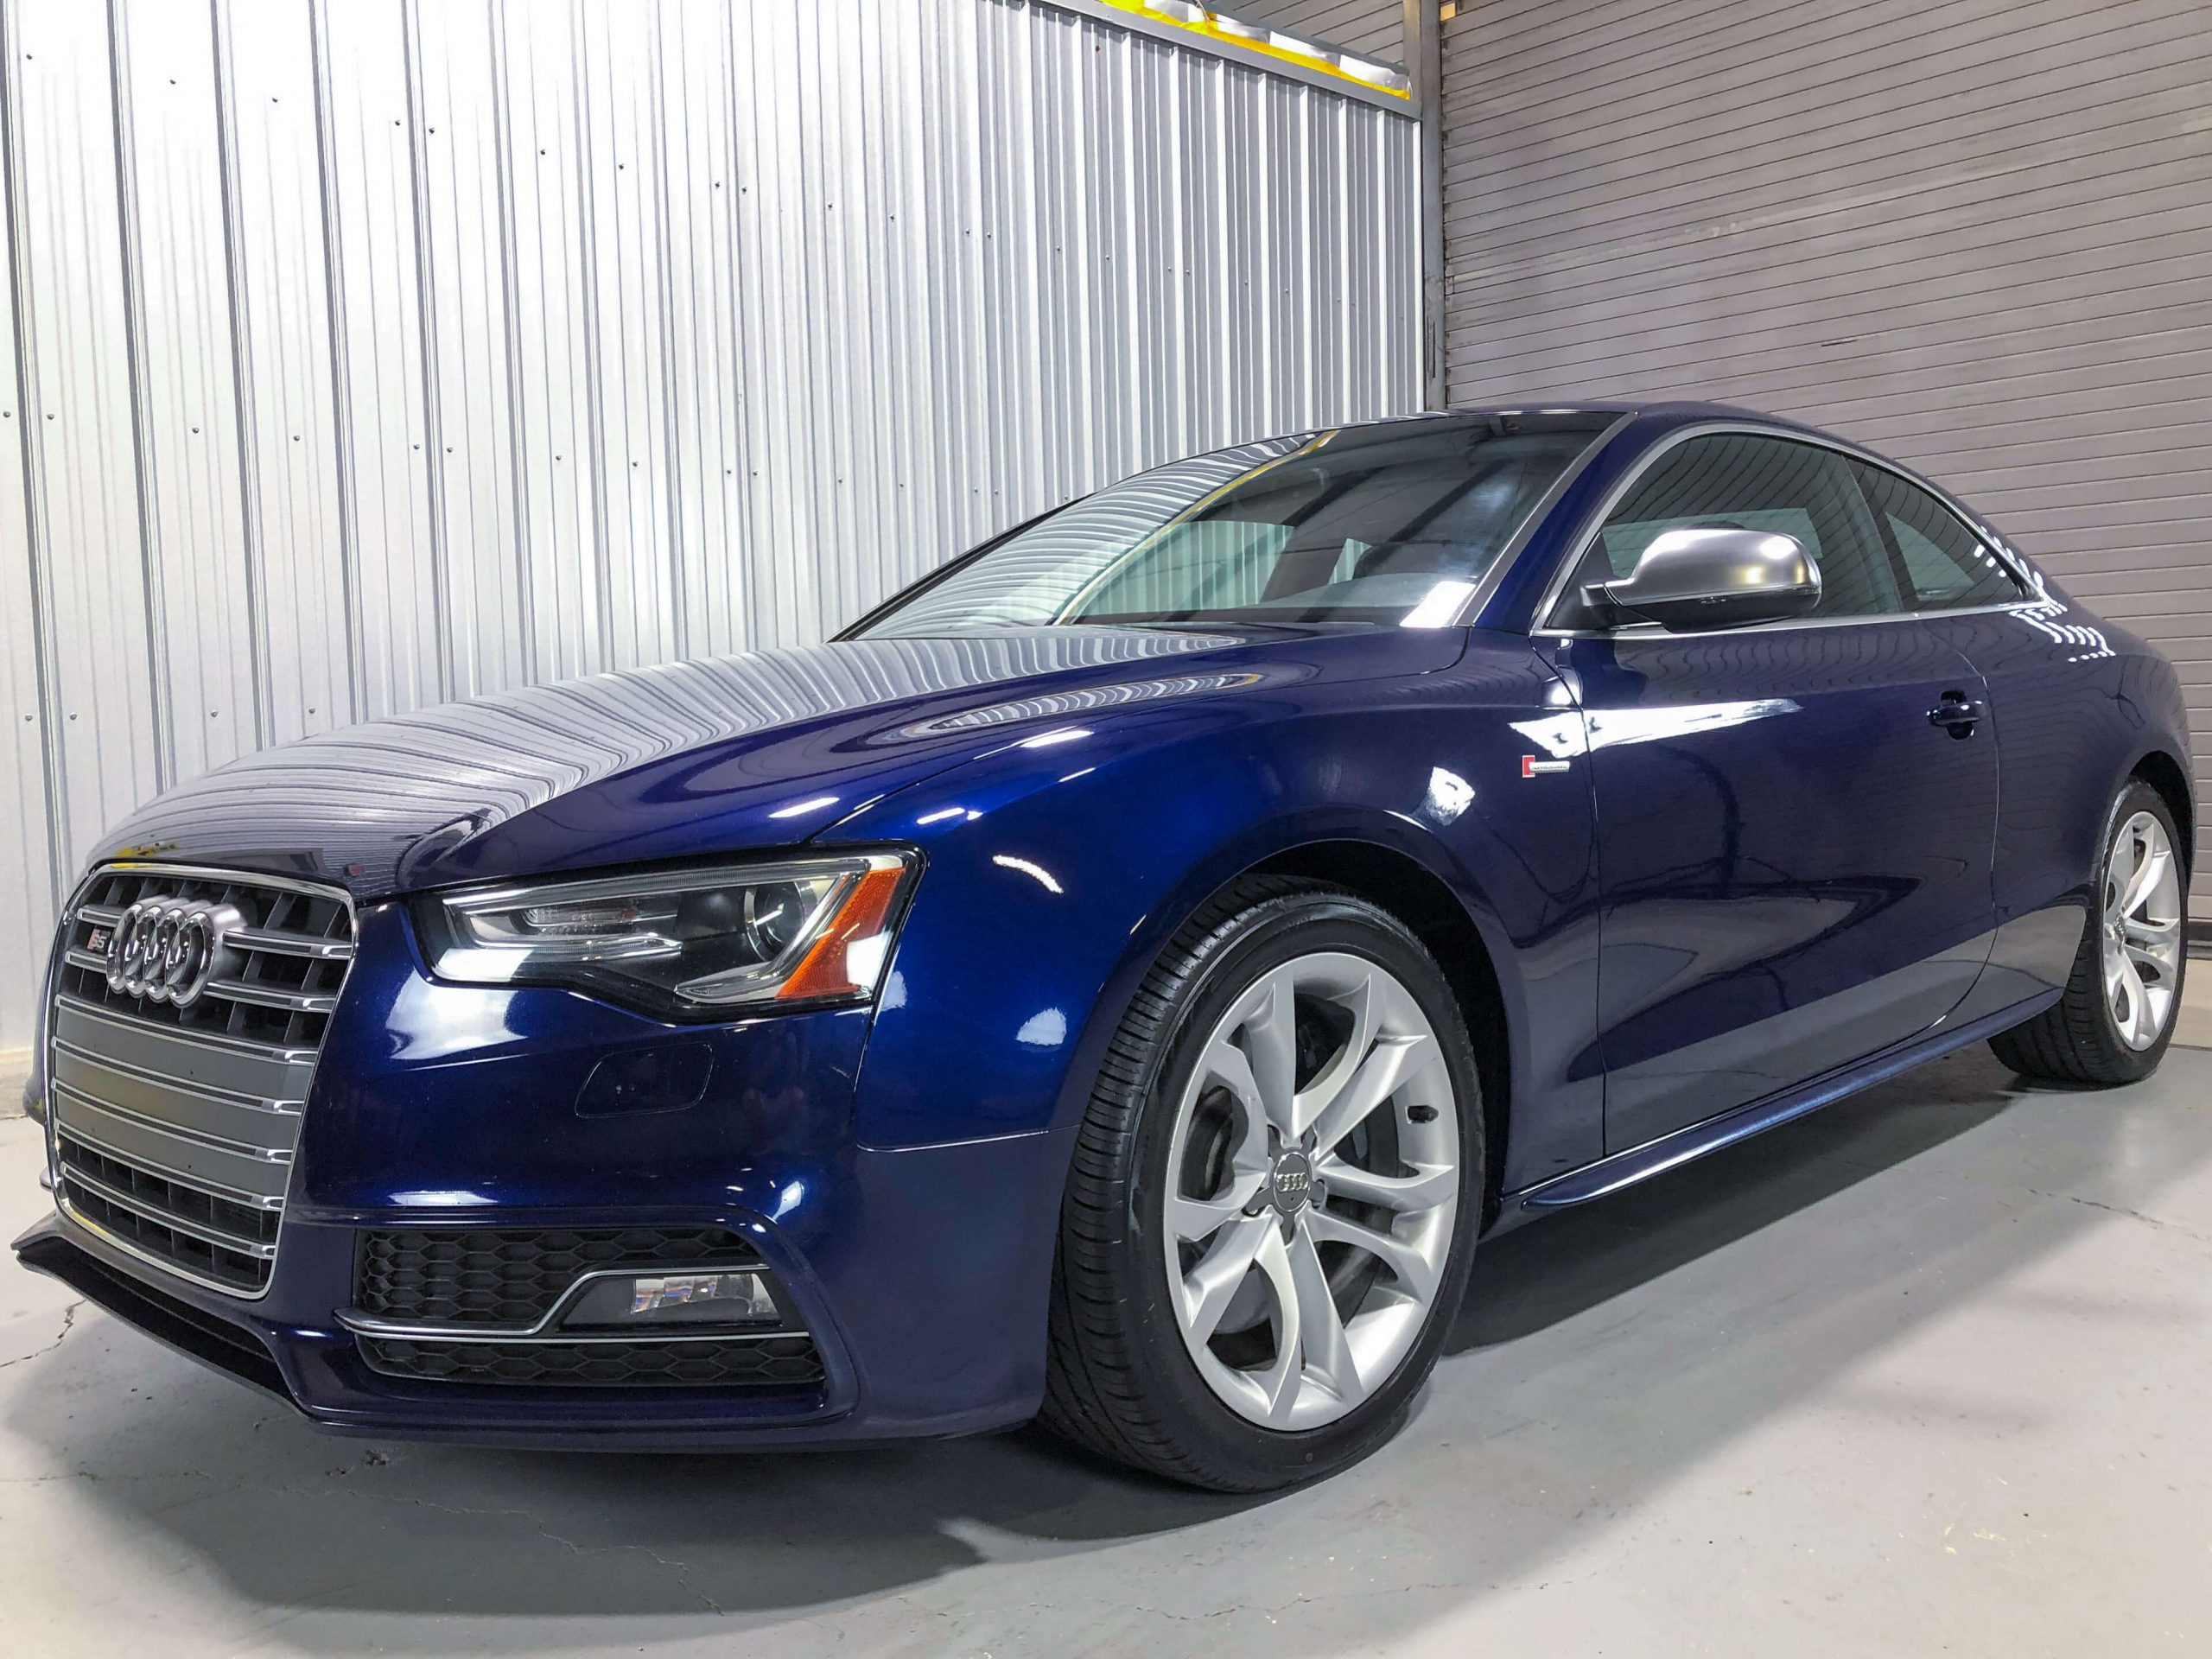 Audi S5 - West Chester, PA - Sold at Kasser Motor Group